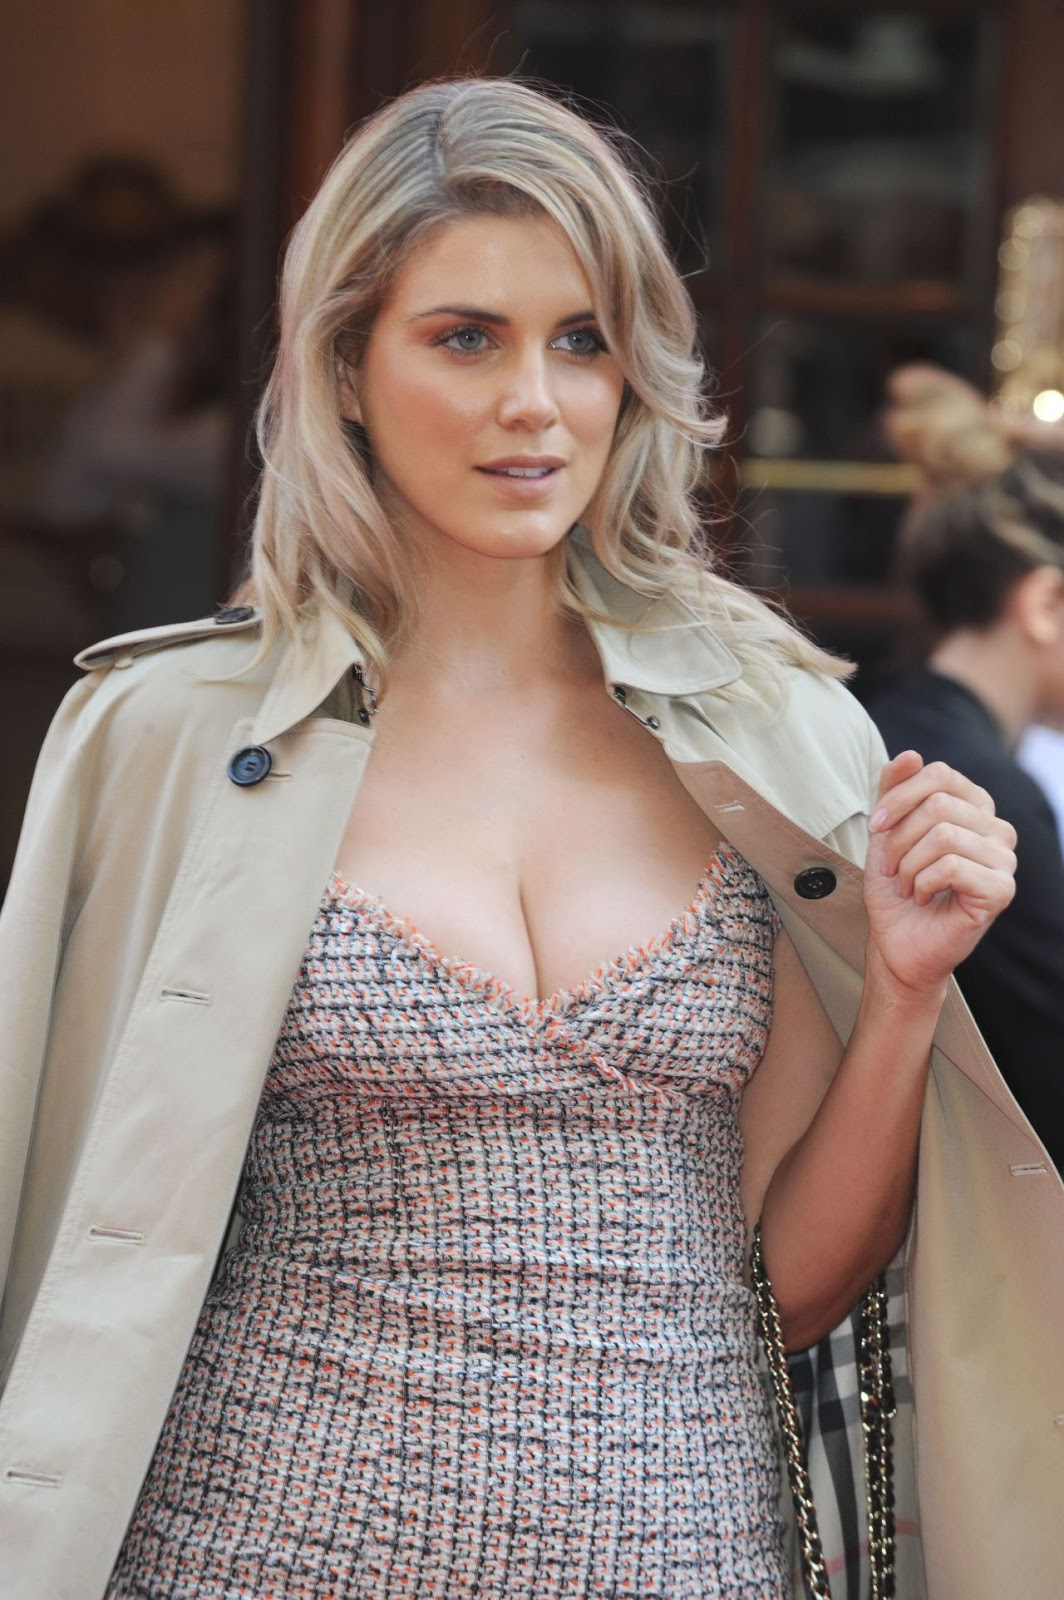 Ashley James nudes (24 pictures), pictures Selfie, Instagram, braless 2020